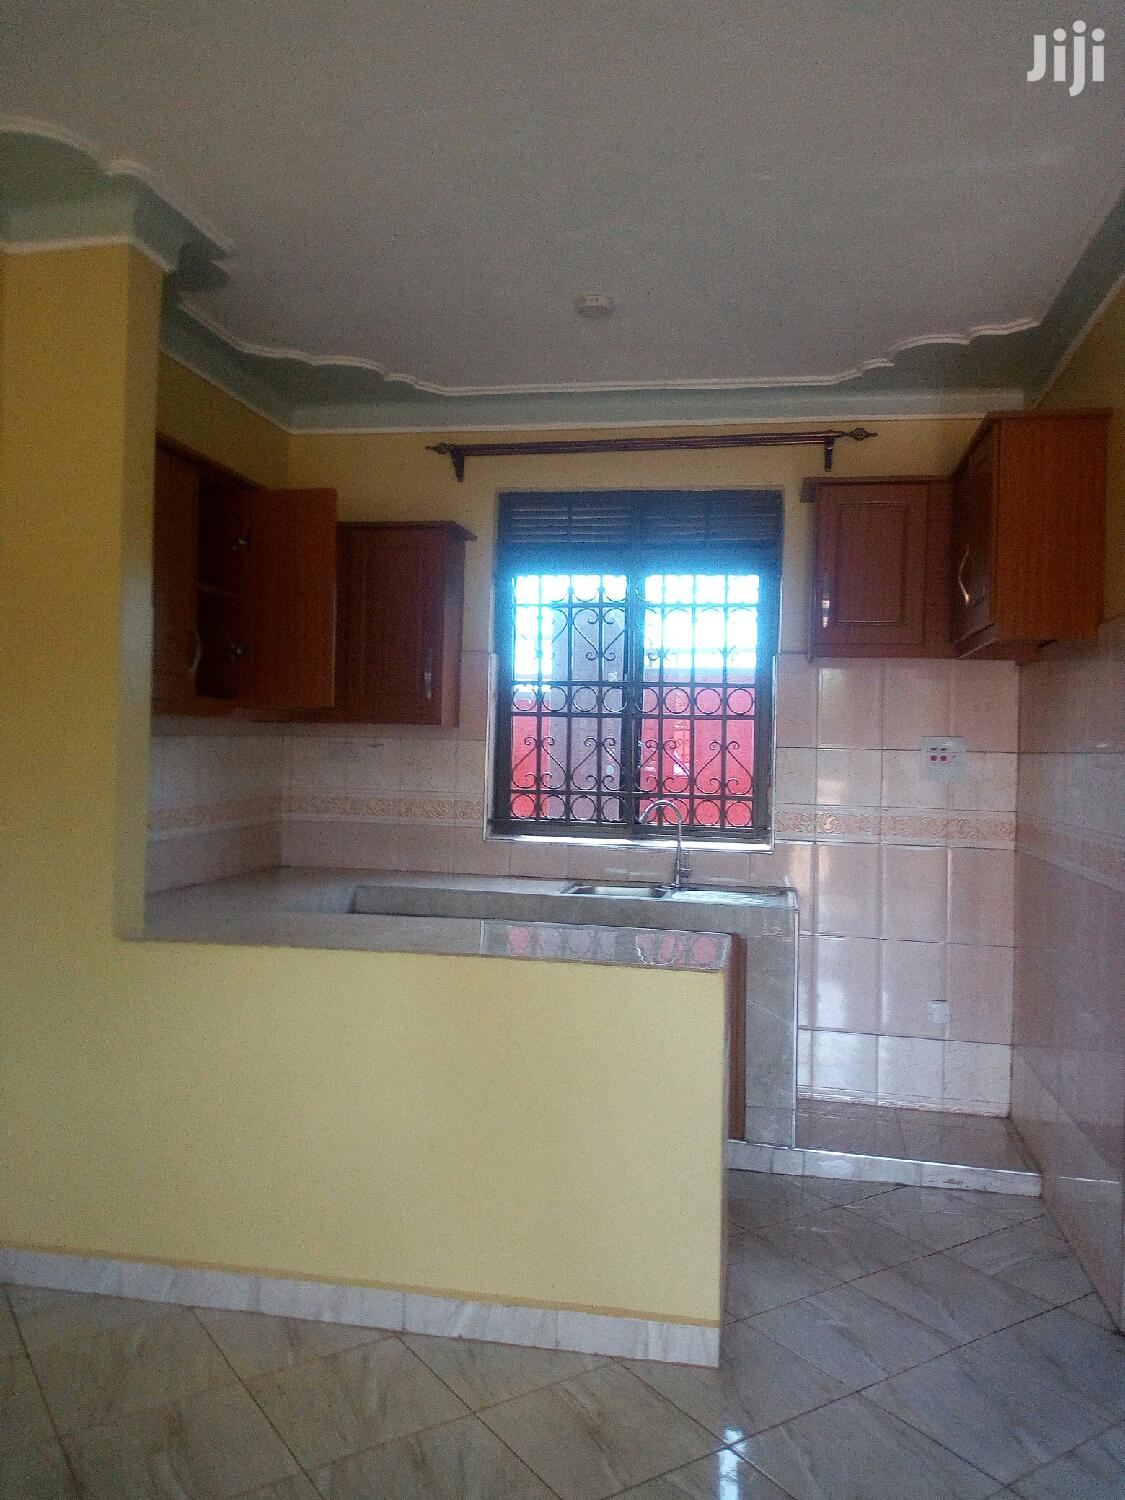 Single Room House In Kisaasi For Rent   Houses & Apartments For Rent for sale in Kampala, Central Region, Uganda